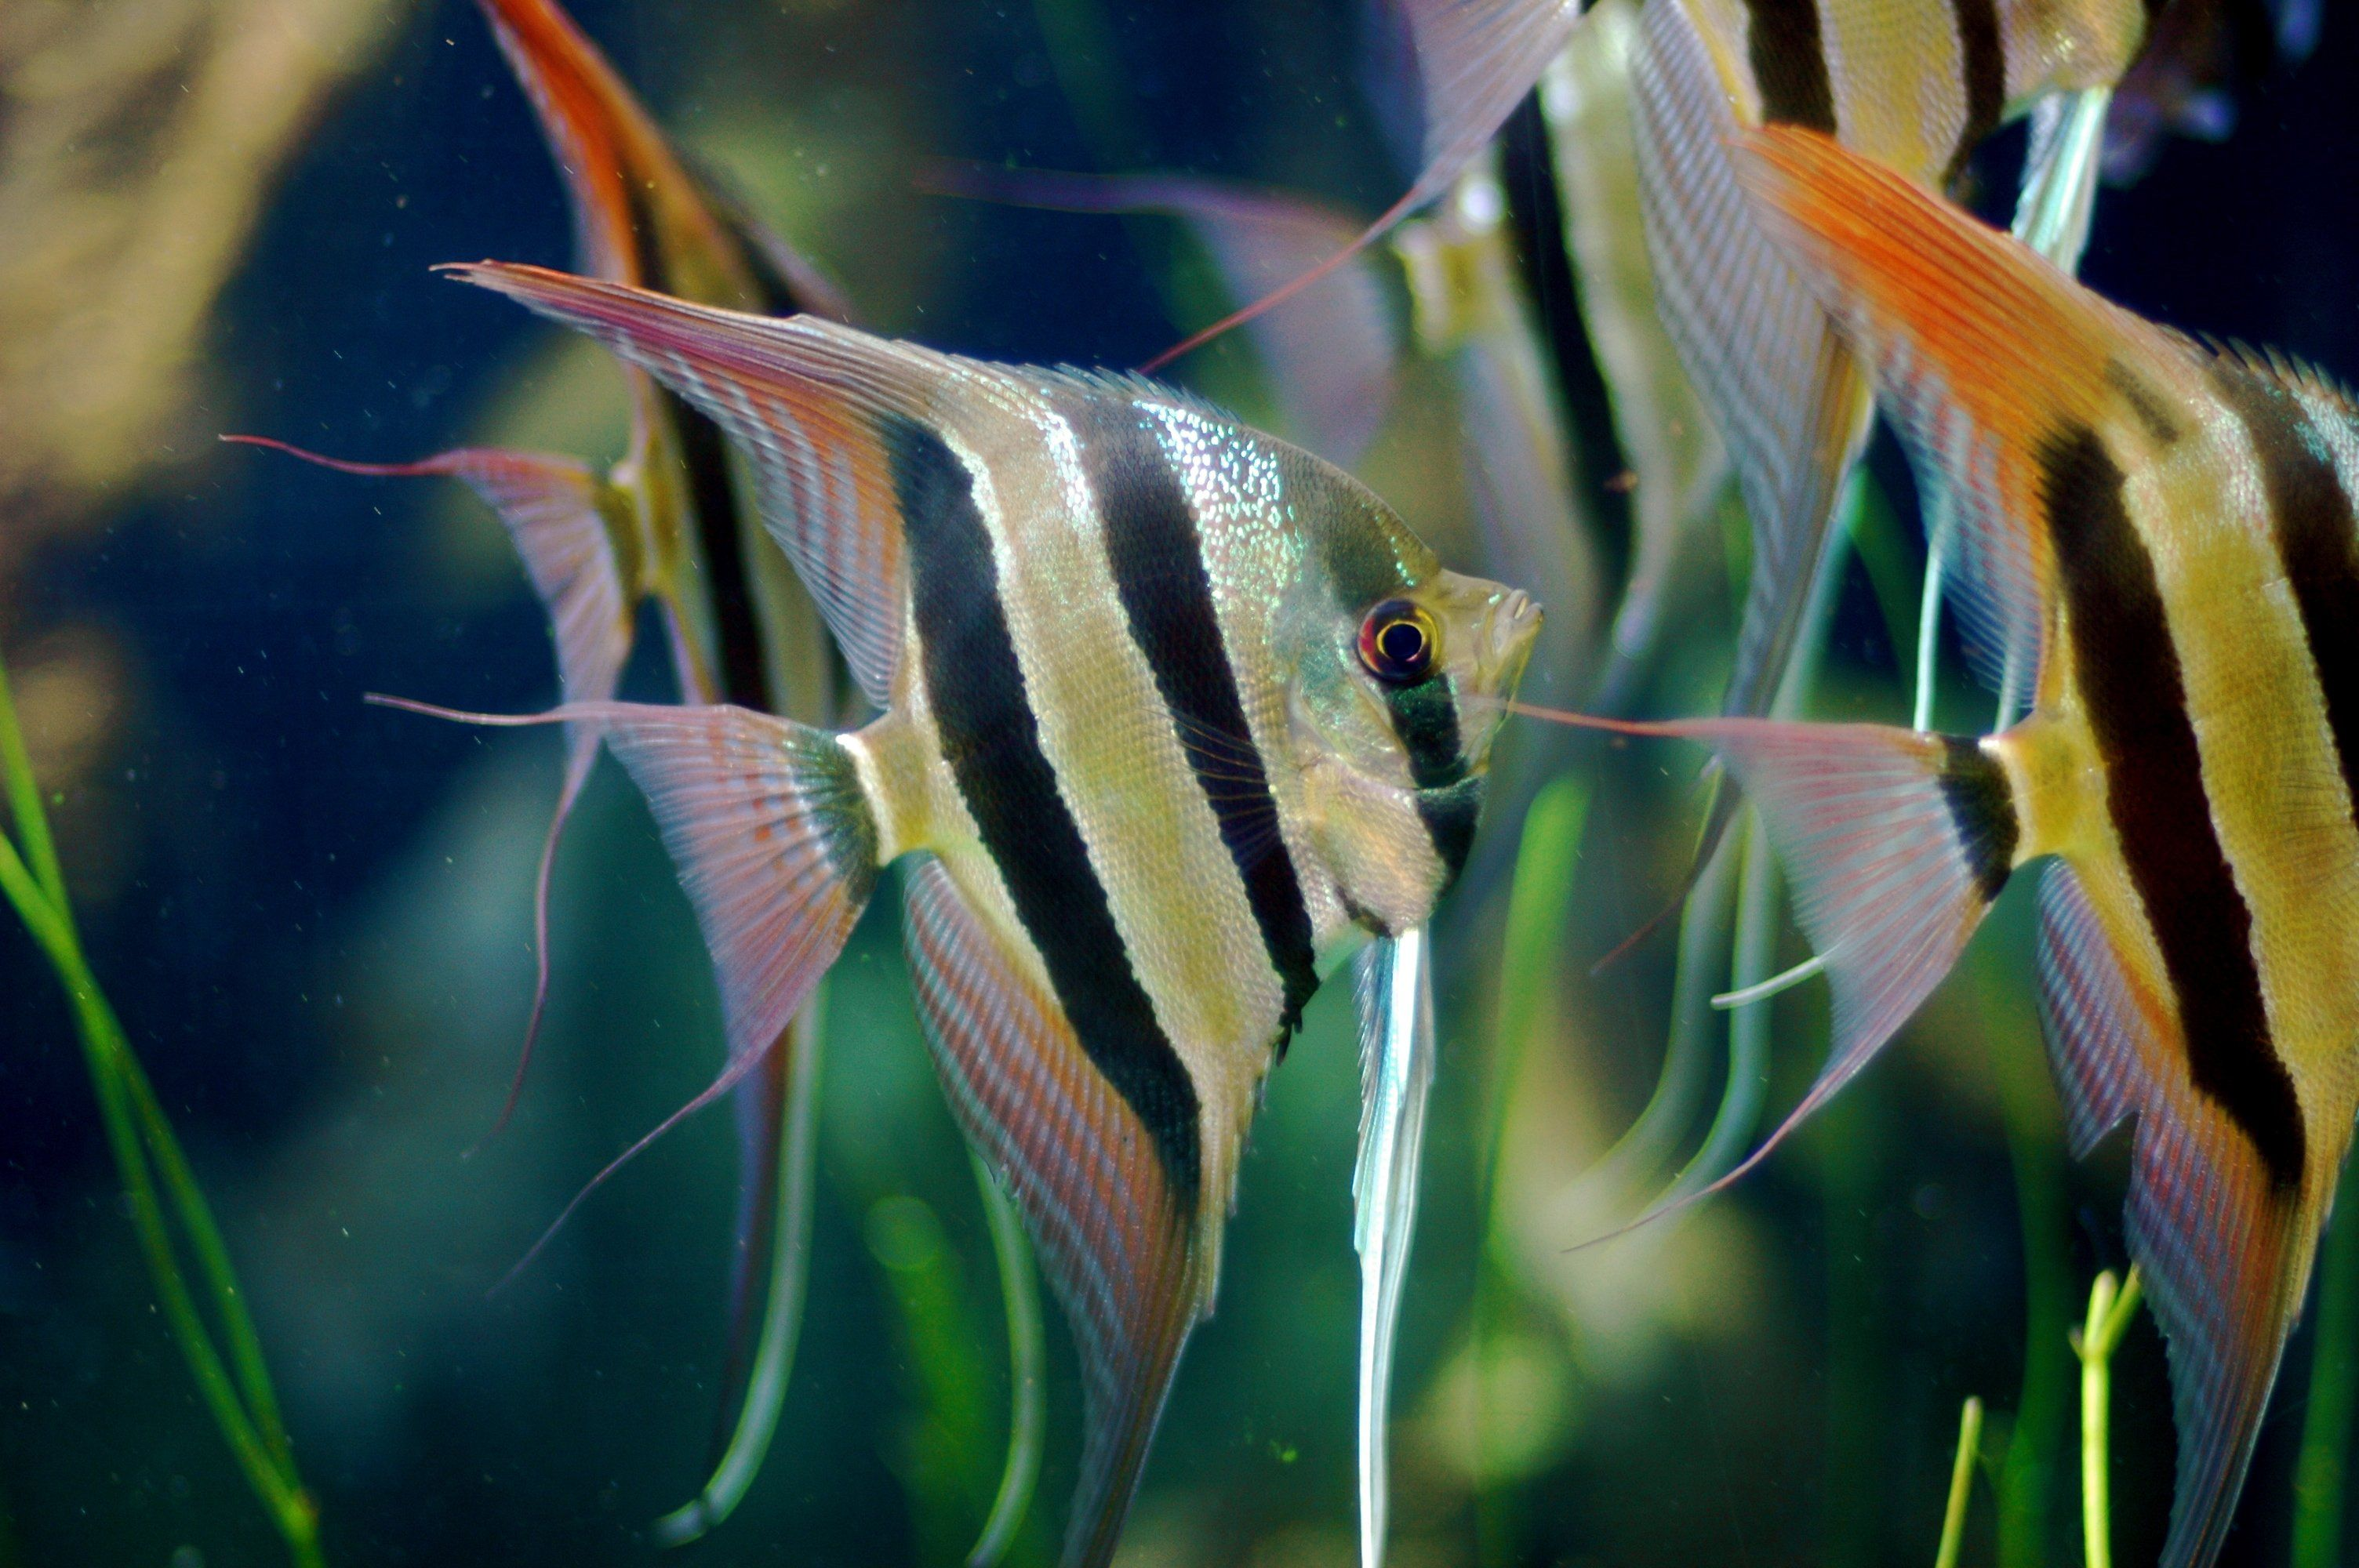 Available Online For Ordering Now At Our Store Manacapuru Angelf Check It Out Here Http Www Freshnmarine Co Angel Fish Aquarium Fish Freshwater Aquarium